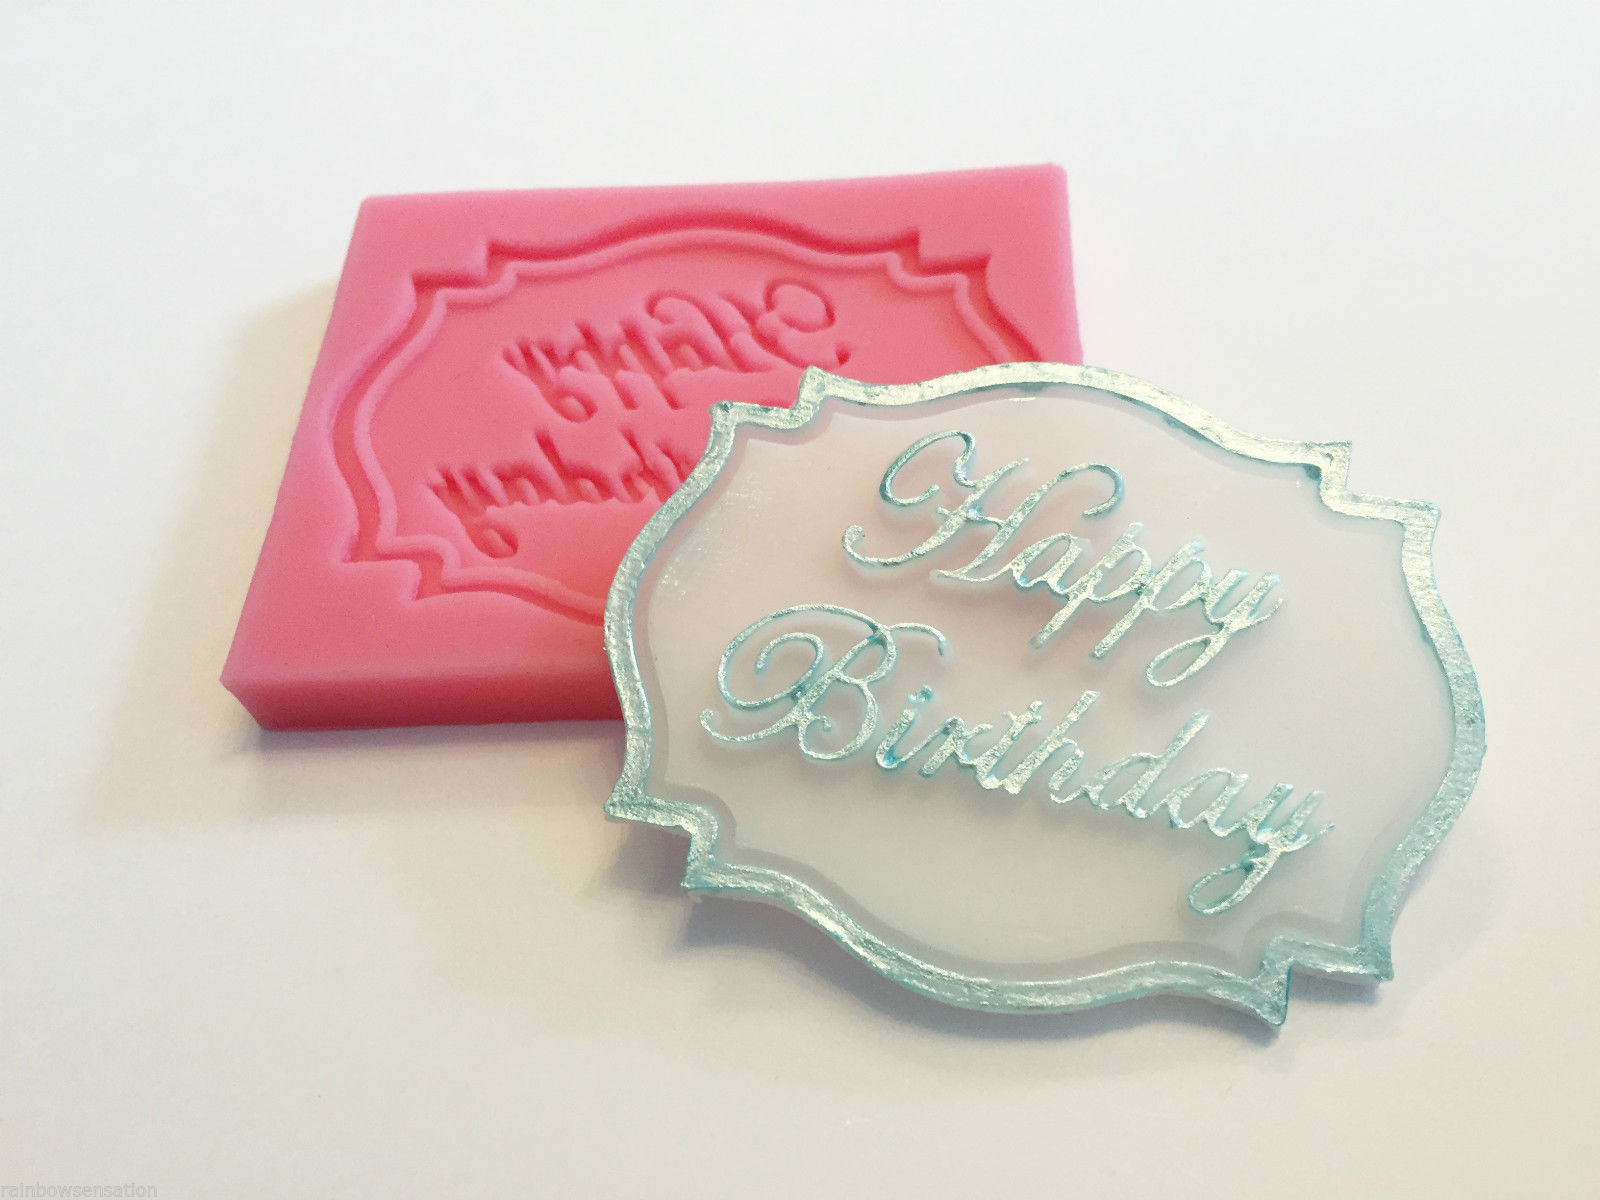 Happy Birthday Cake Cupcake Decoration Silicone Mould Mold Fondant Chocolate(China (Mainland))